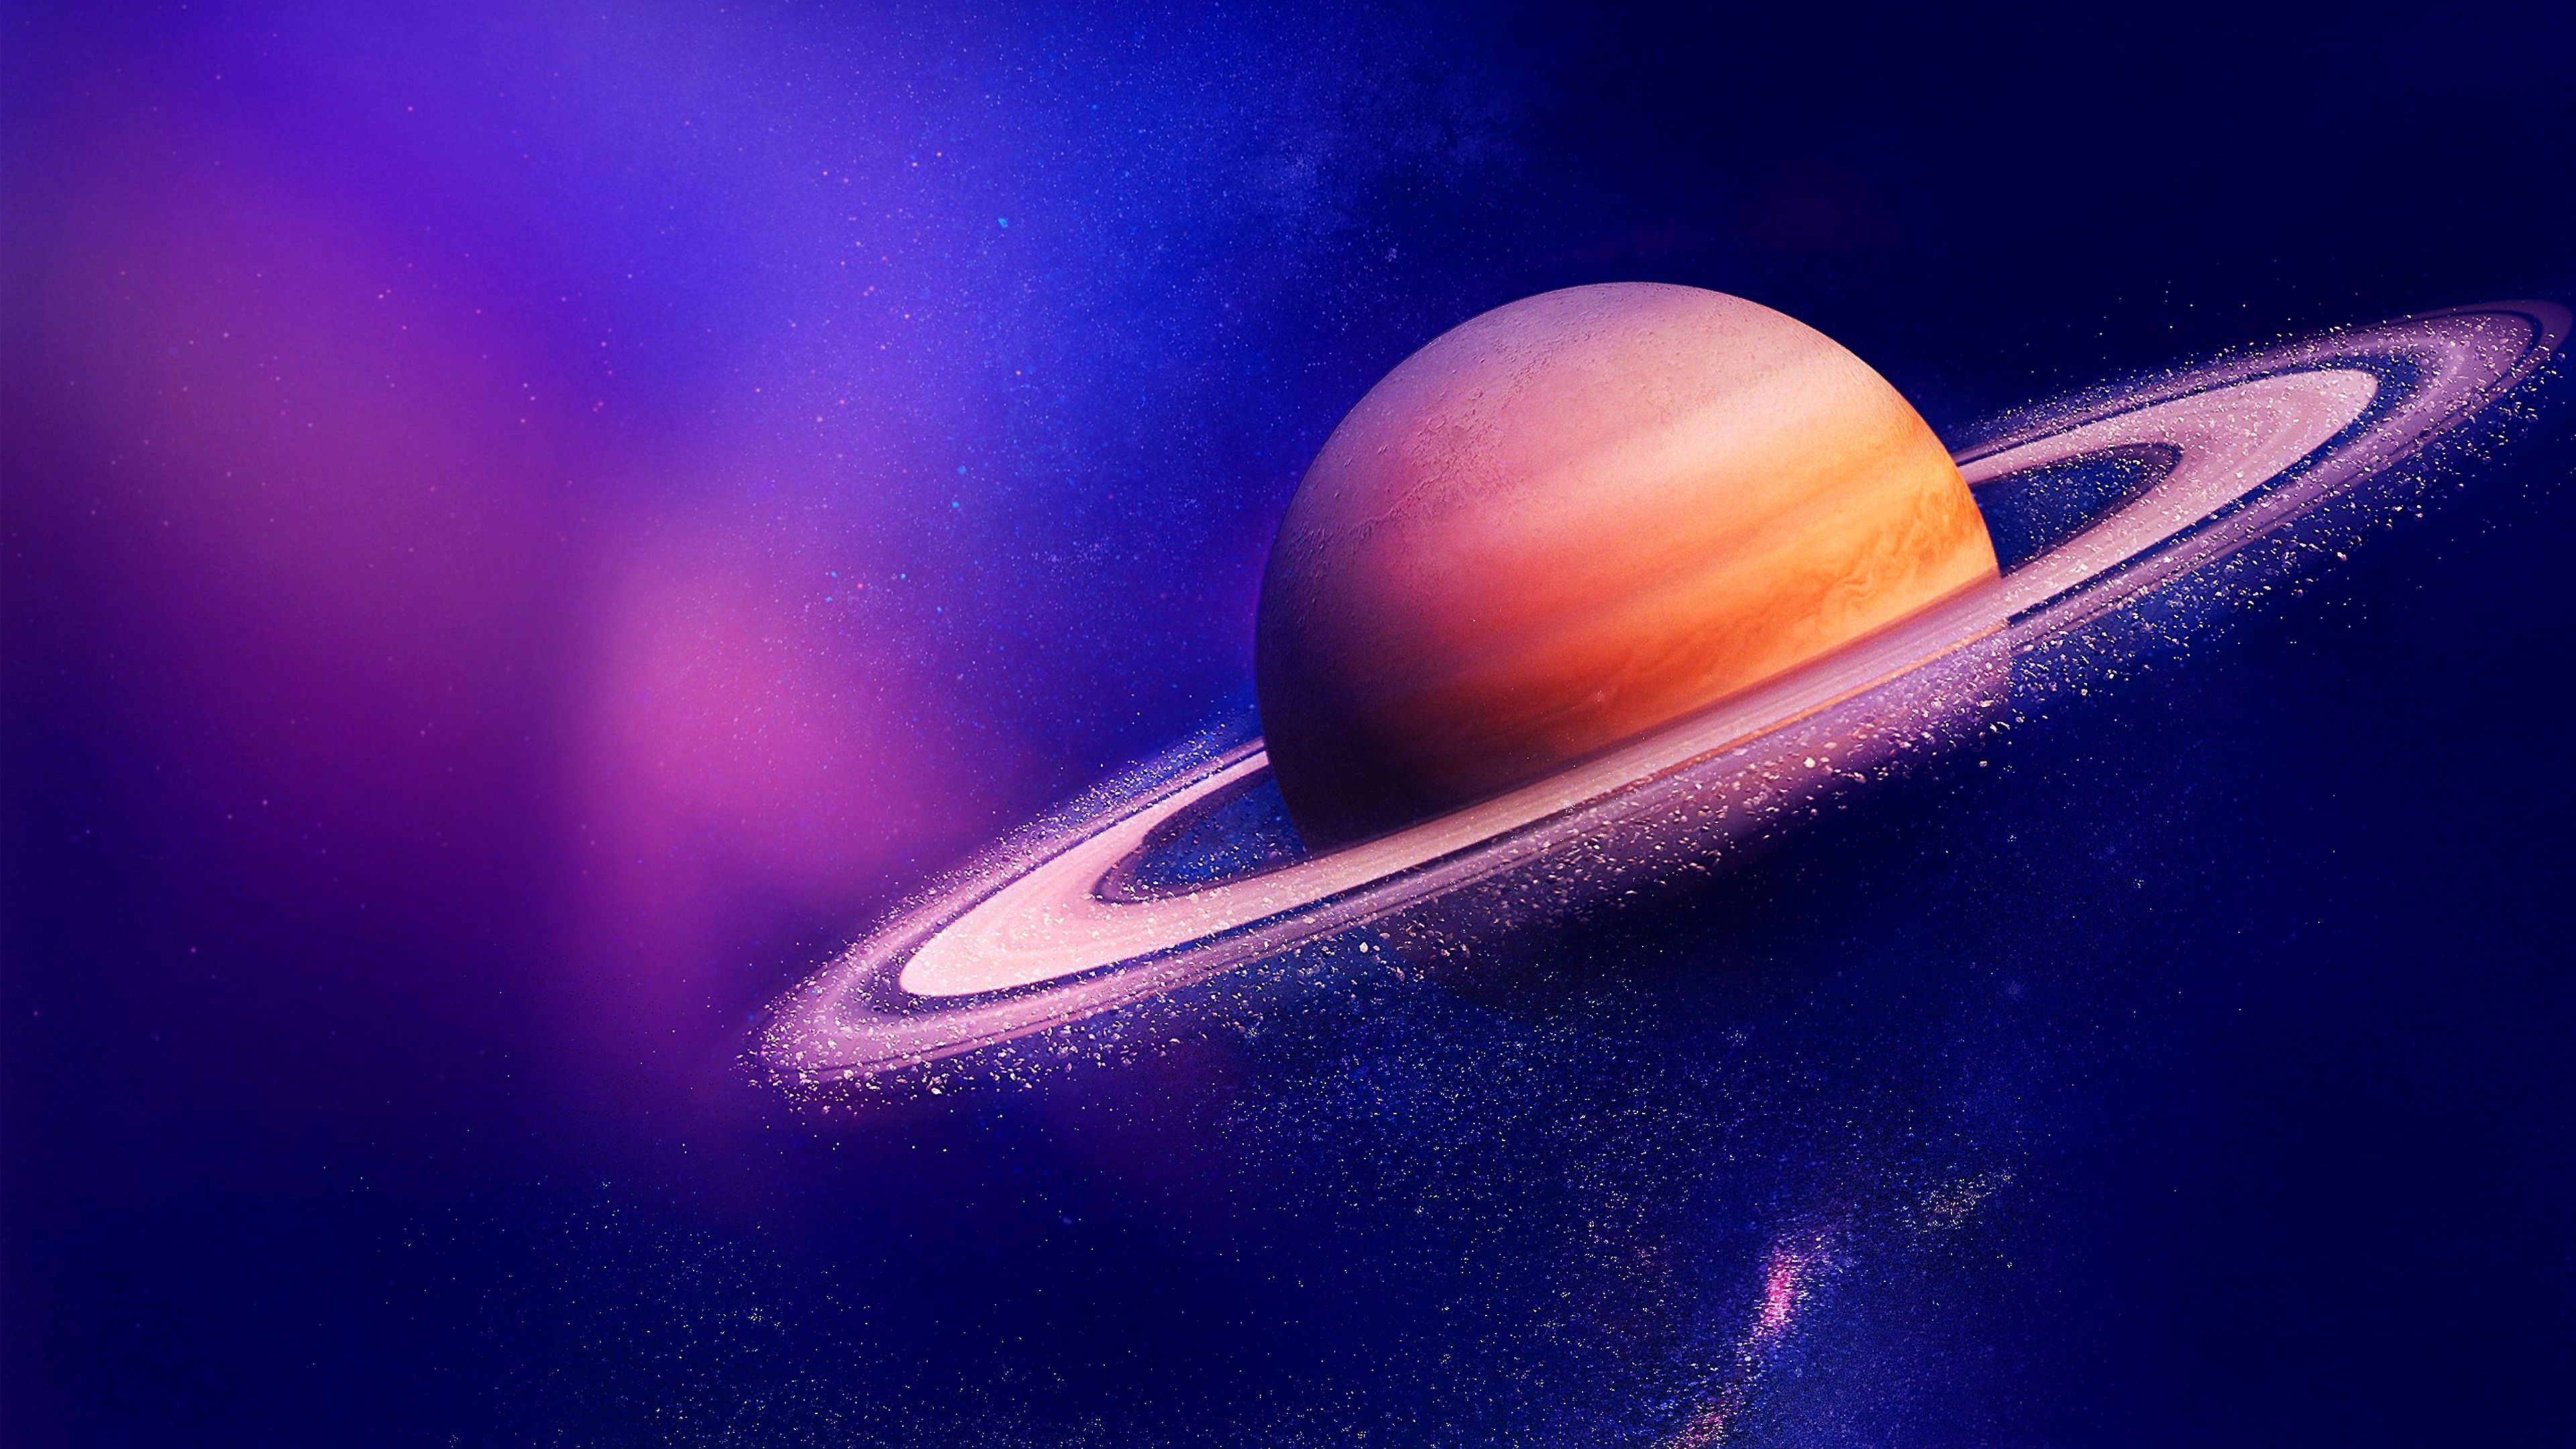 Planet Saturn Wallpapers Top Free Planet Saturn Backgrounds